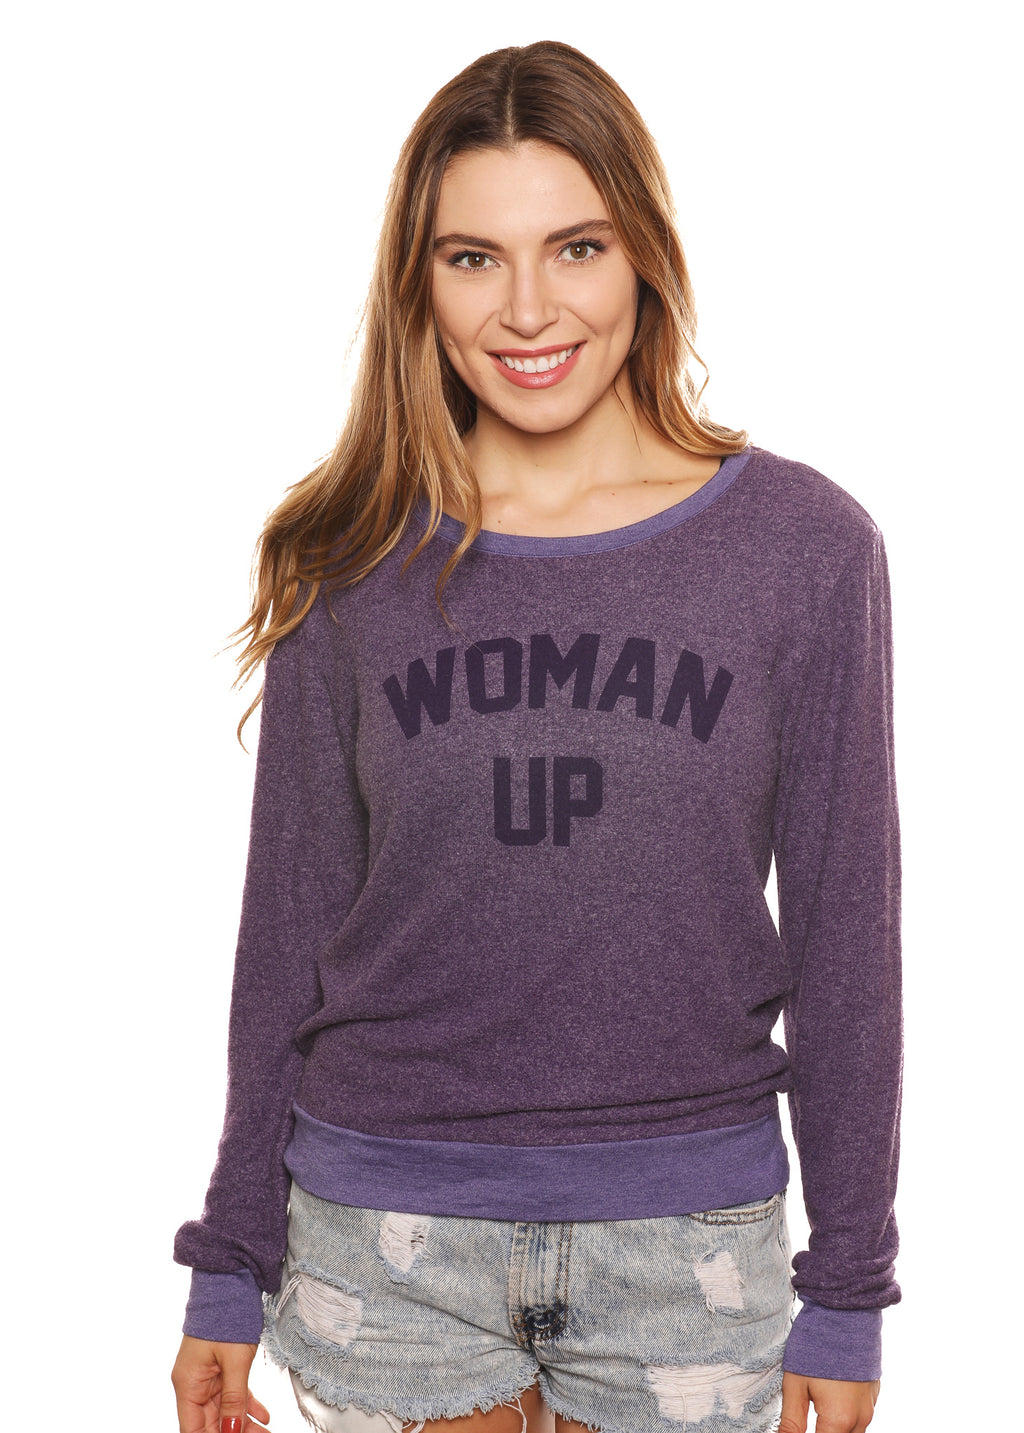 """Woman Up"" Graphic Sweatshirt"